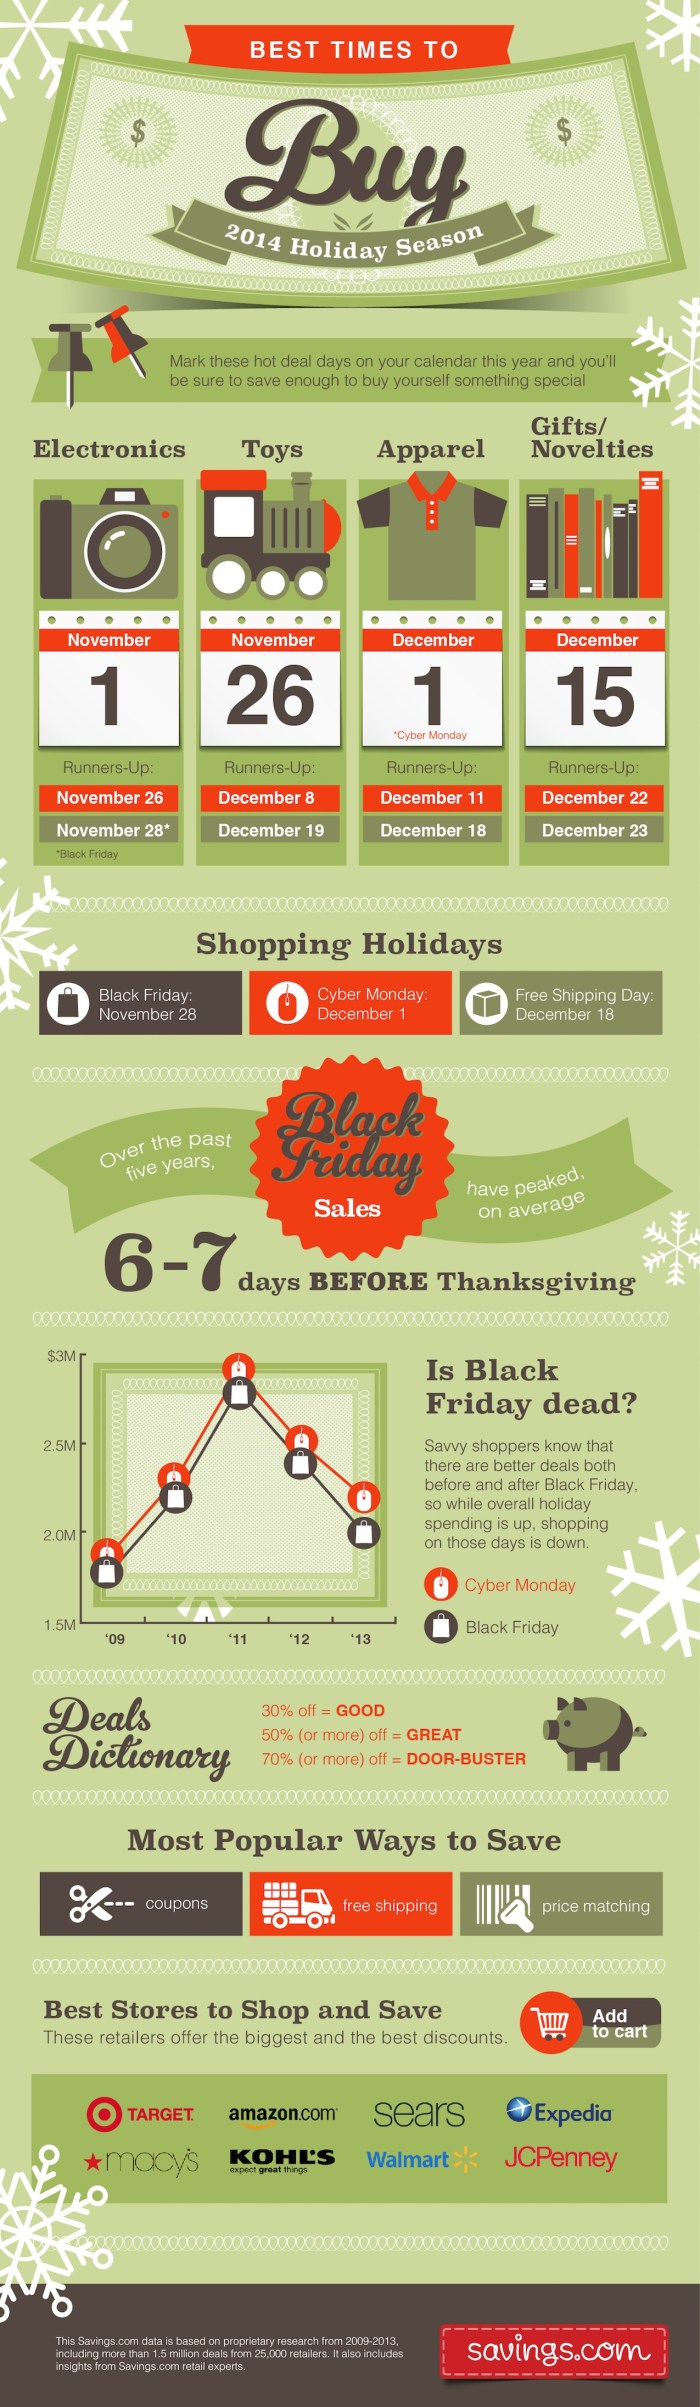 Best-Times-to-Buy-Infographic1